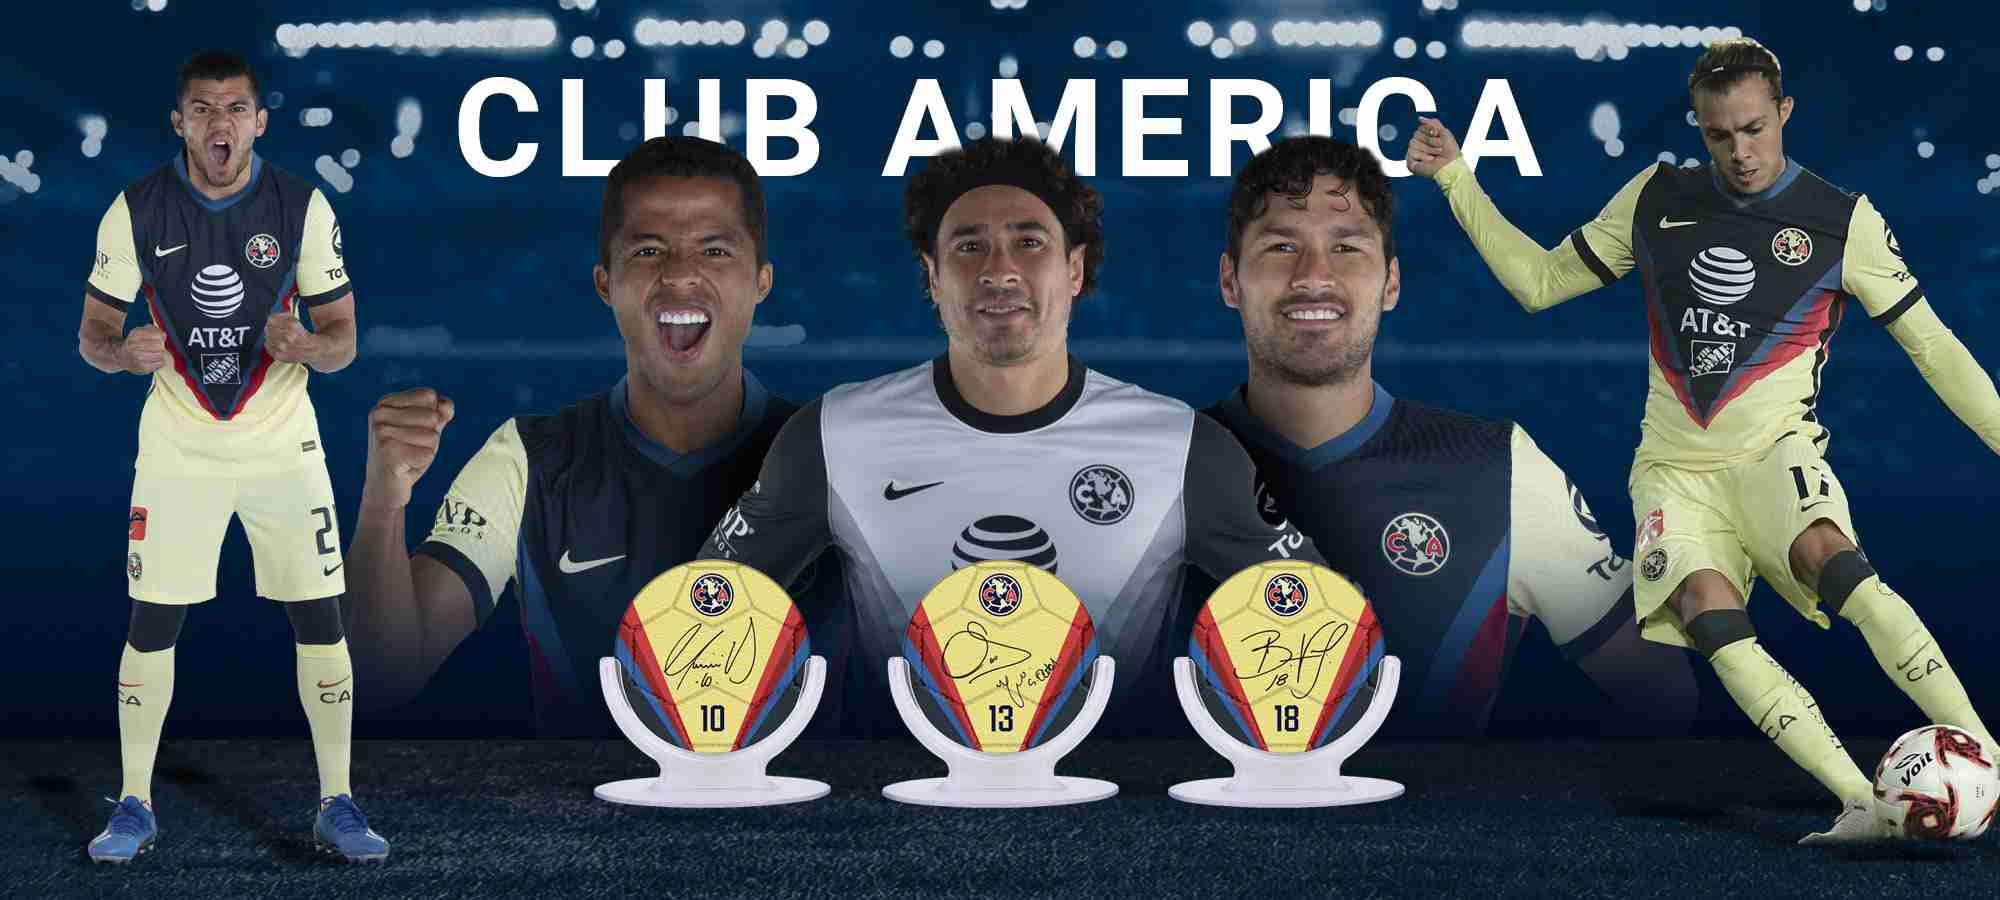 Club America Signables Collectibles Collection